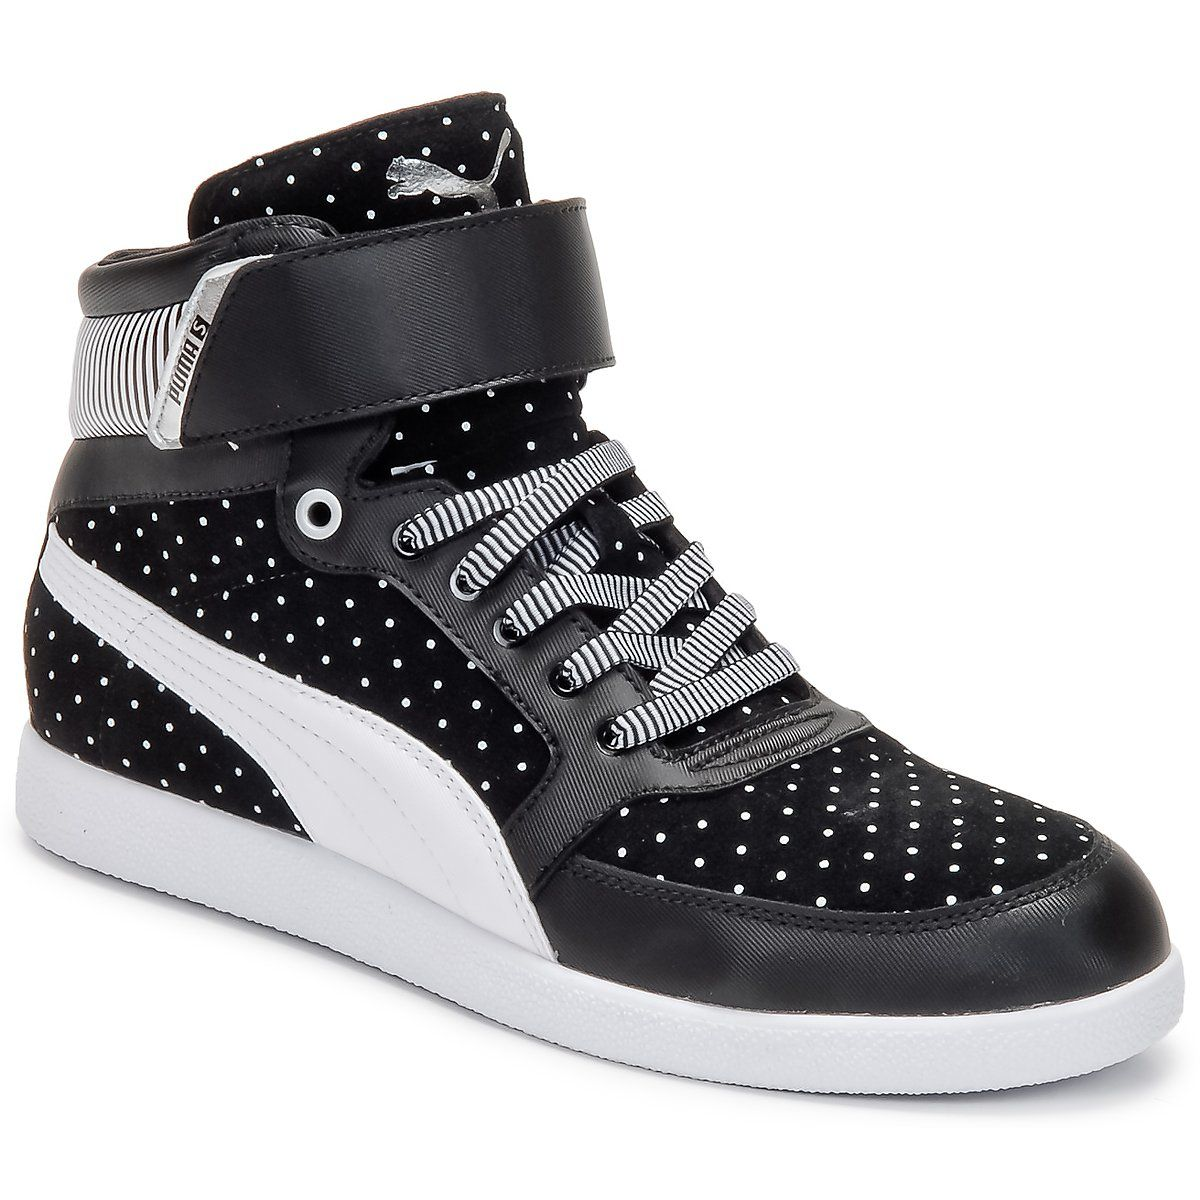 20c1d91e5a60 Hi top trainers Puma SKYLAA HI POLKA DOT WNS BLACK   White   White - Free  Next Day Delivery with Rubbersole.co.uk ! - Shoes Women £ 46.74